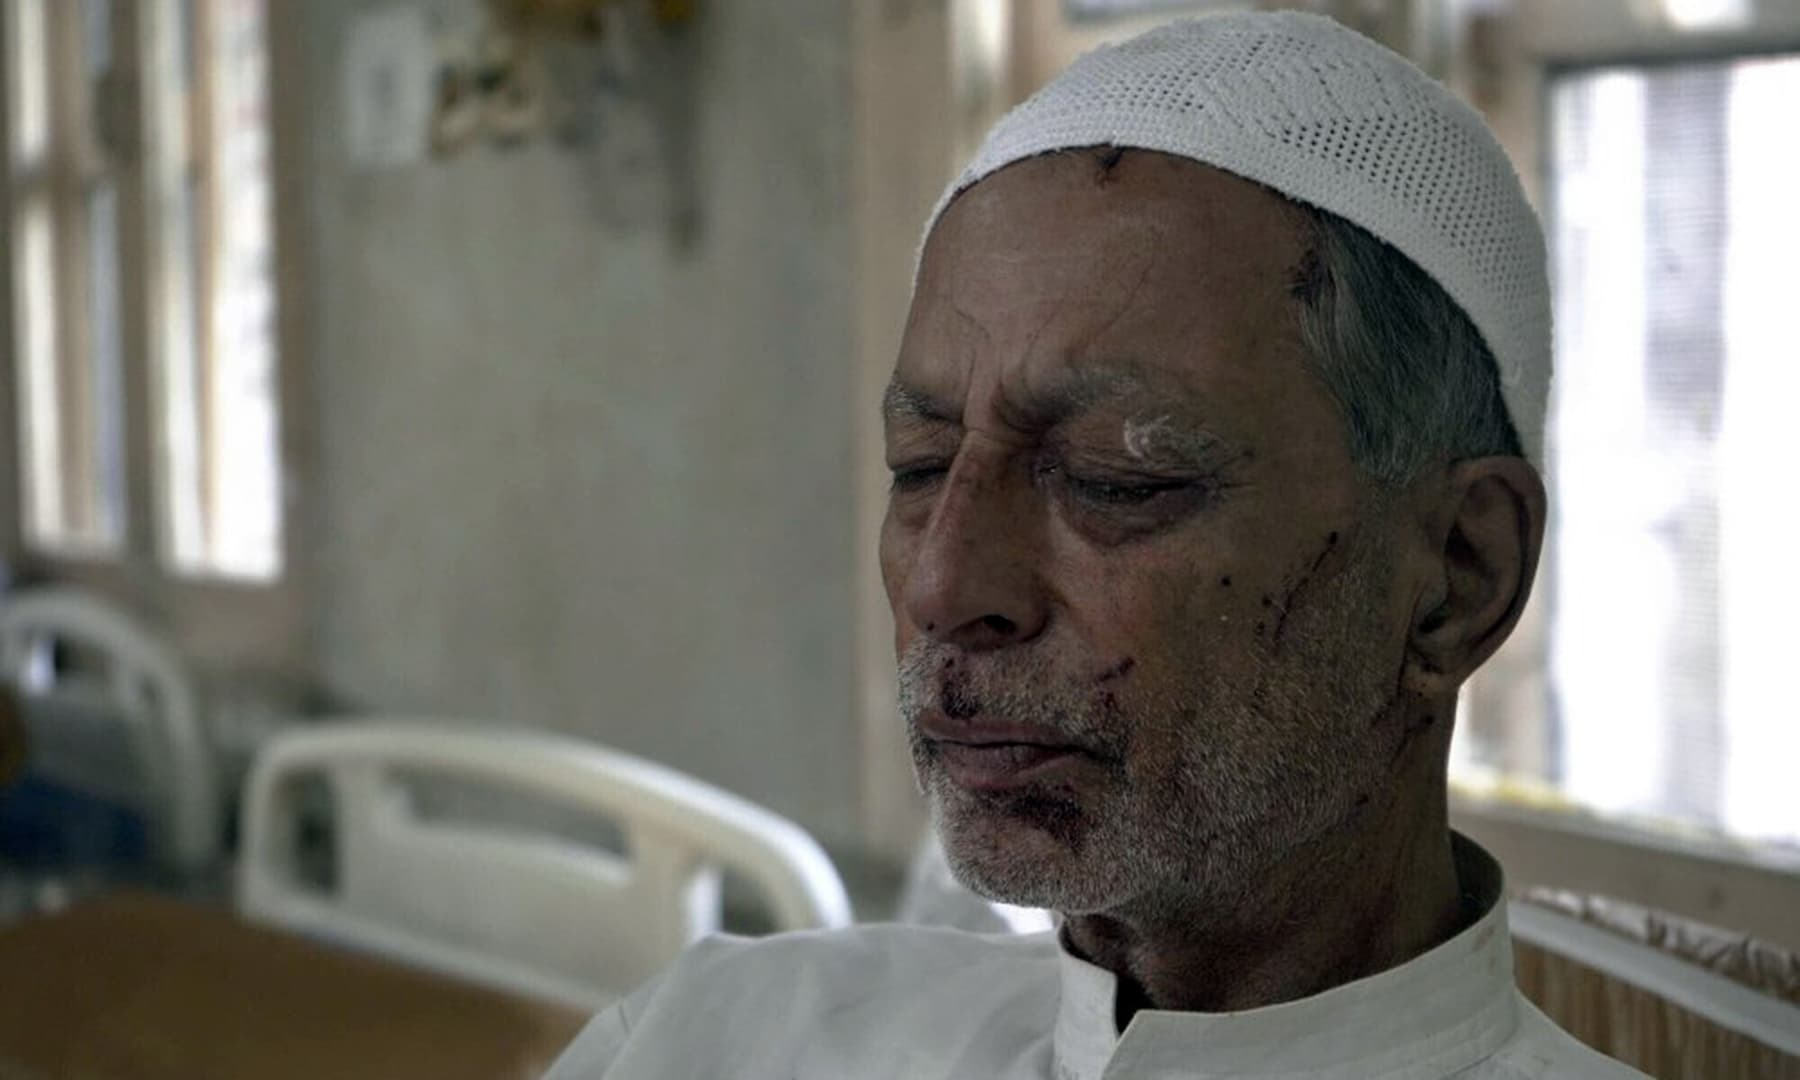 Mohammad Siddiq, 70, said he was wounded when an Indian police man fired a pellet gun at him while returning home from a mosque, badly damaging his left eye. — AP